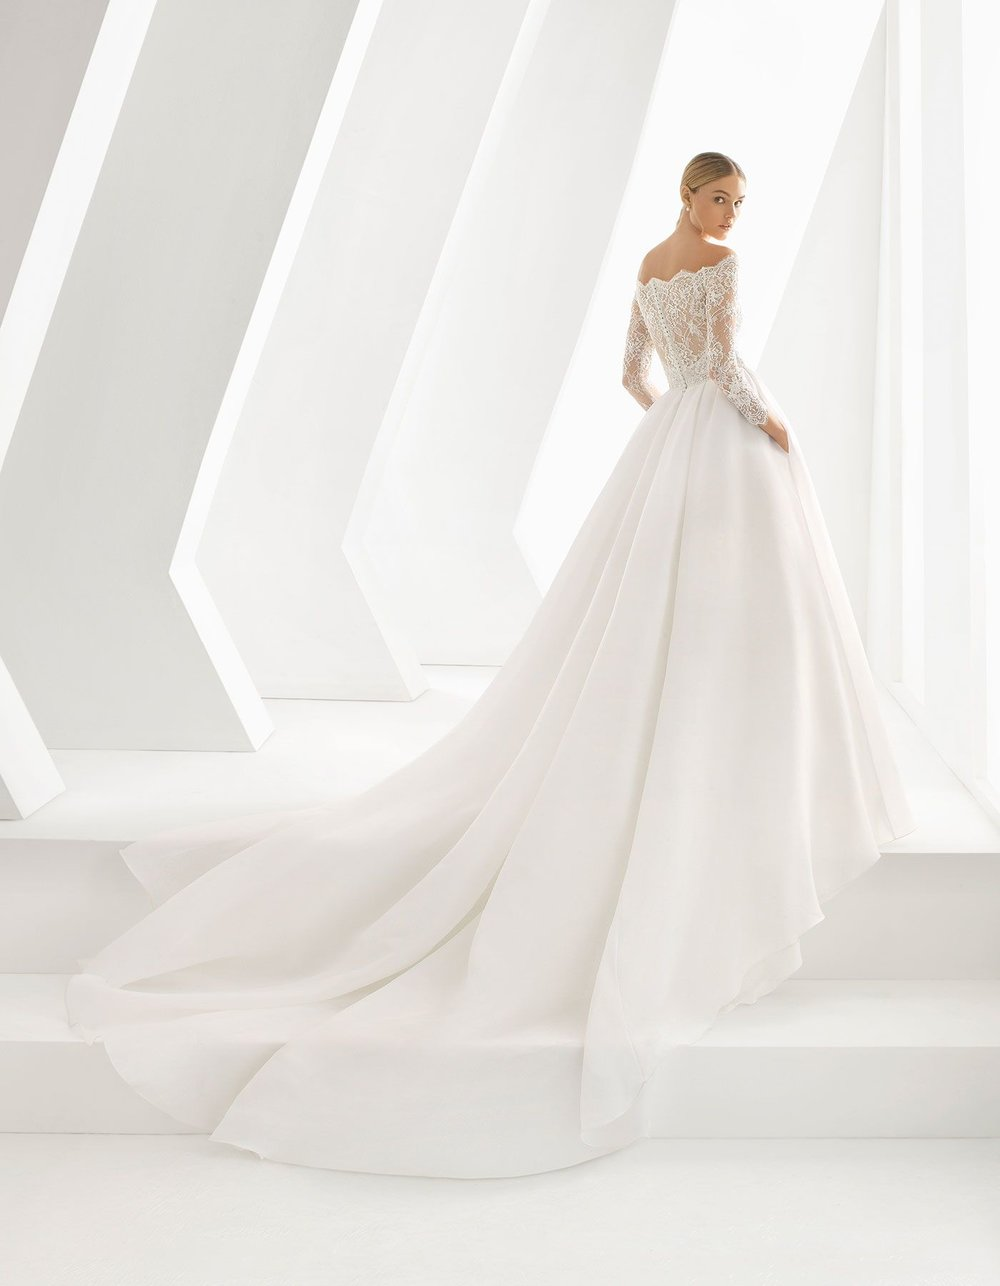 Rosa Clara Drake - this dress is a real show stopper! A princess gown with long sleeves and a scalloped neckline, finished off with a beautiful long train.